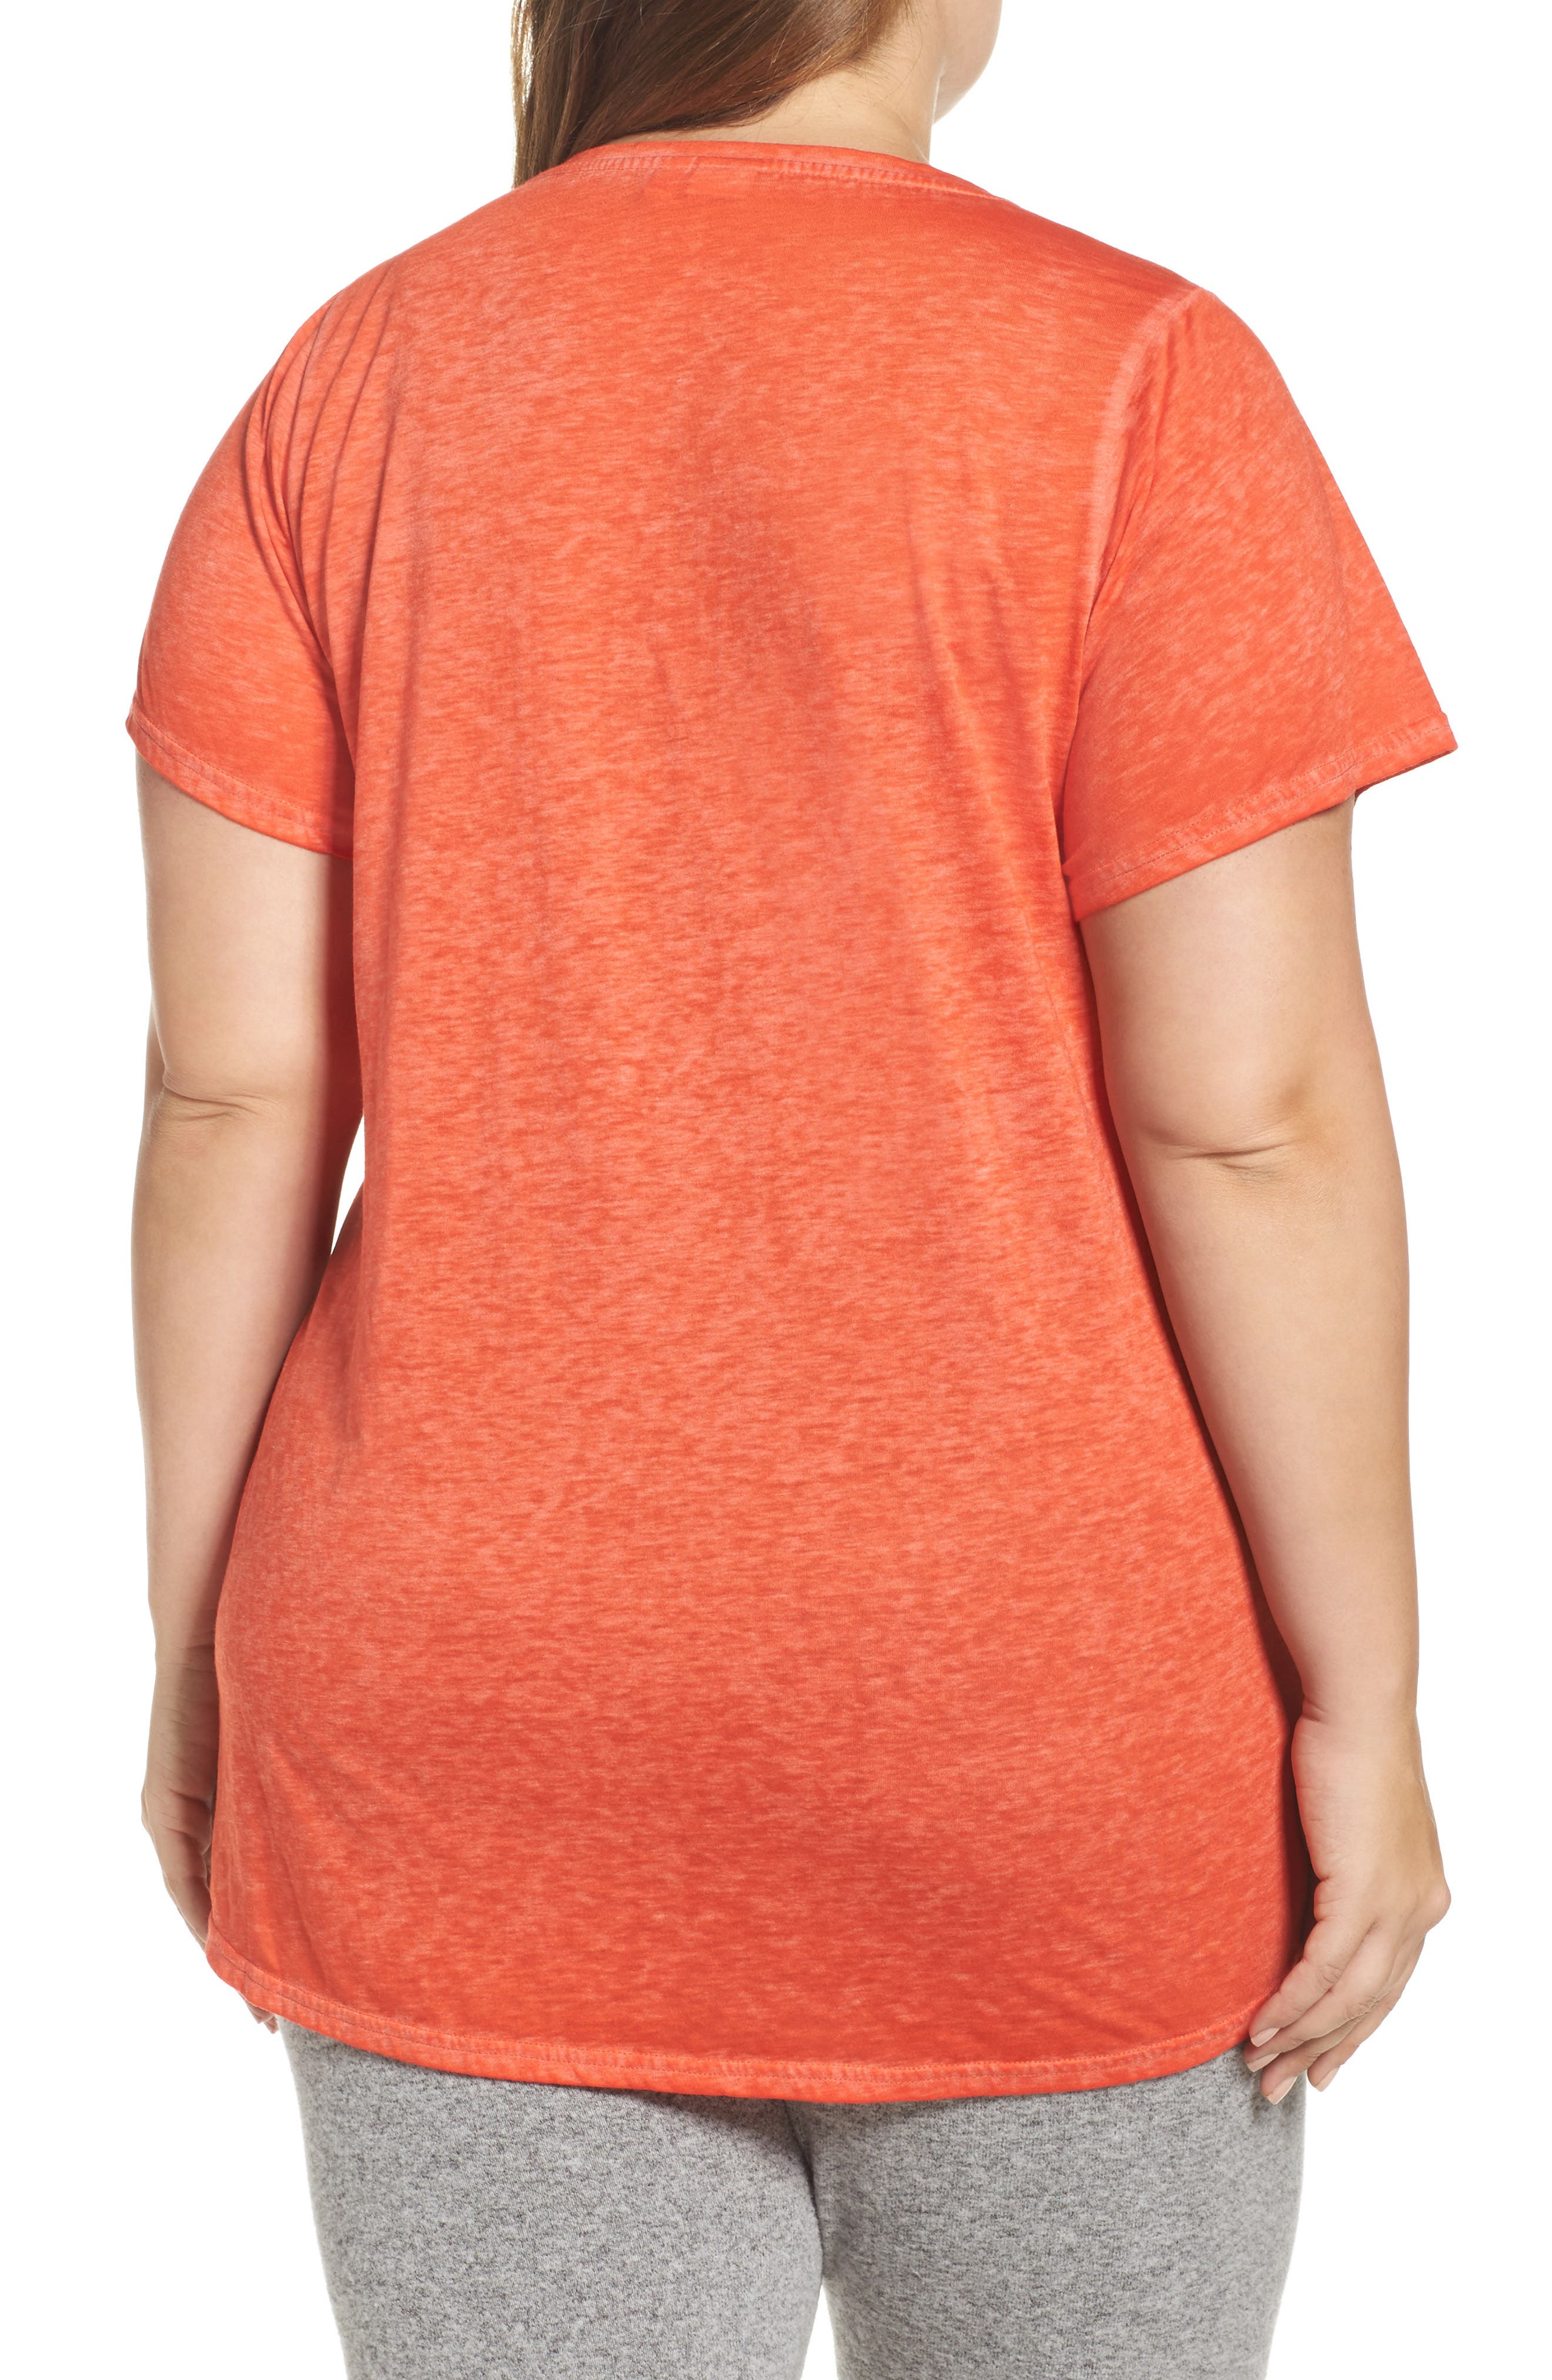 Alternate Image 2  - Make + Model 'Gotta Have It' V-Neck Tee (Plus Size)